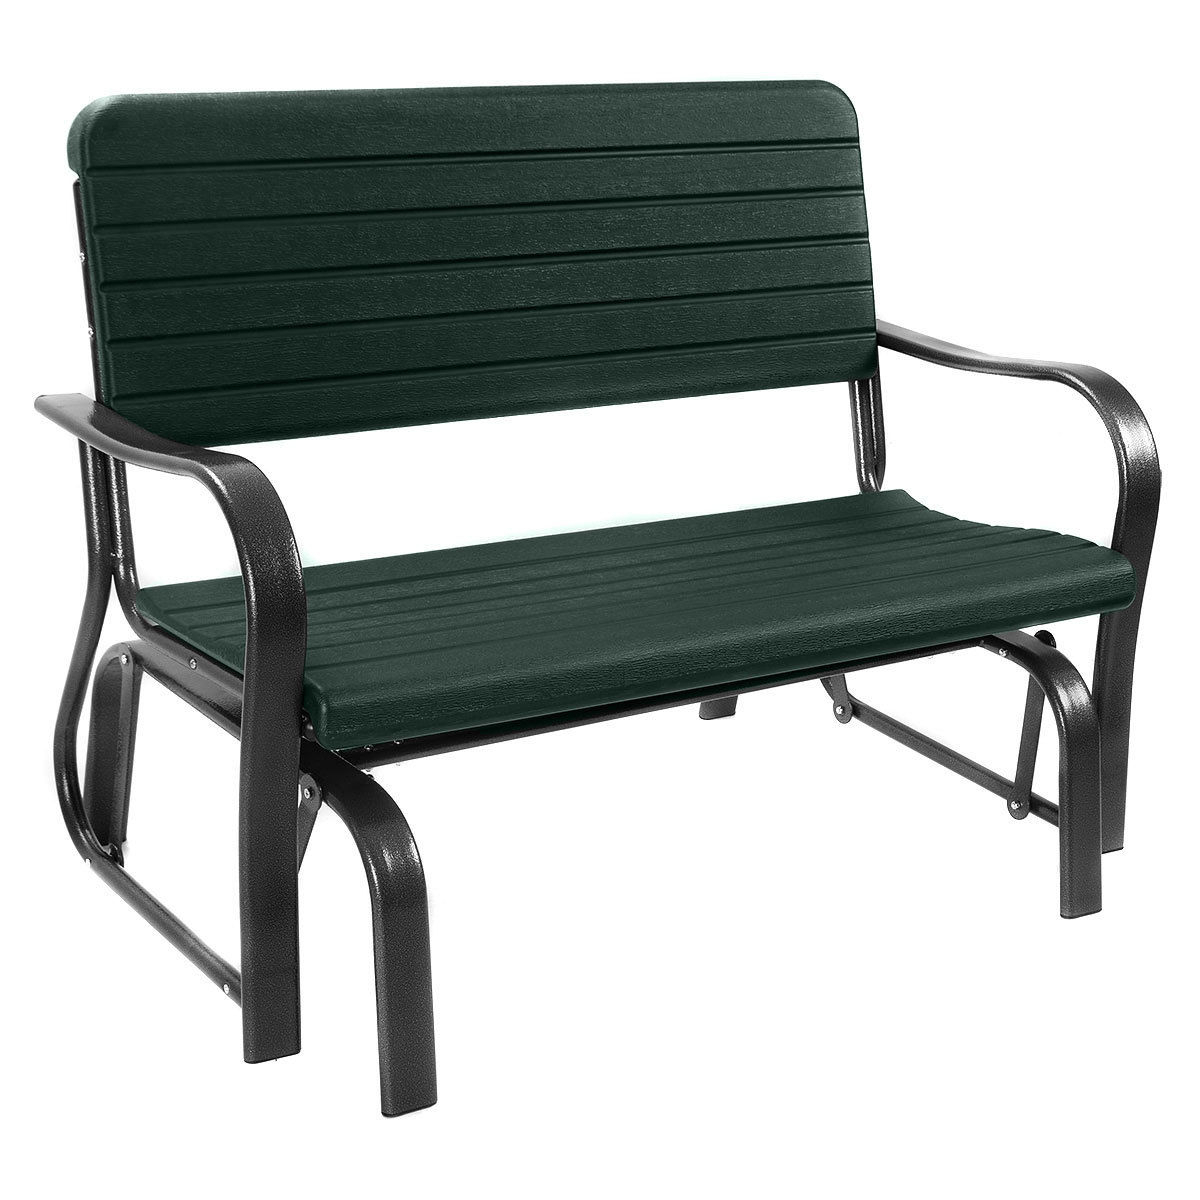 Outdoor Patio Swing Glider Bench Chairs With Most Recent Costway Outdoor Patio Swing Porch Rocker Glider Bench Loveseat Garden Seat Steel (View 4 of 25)